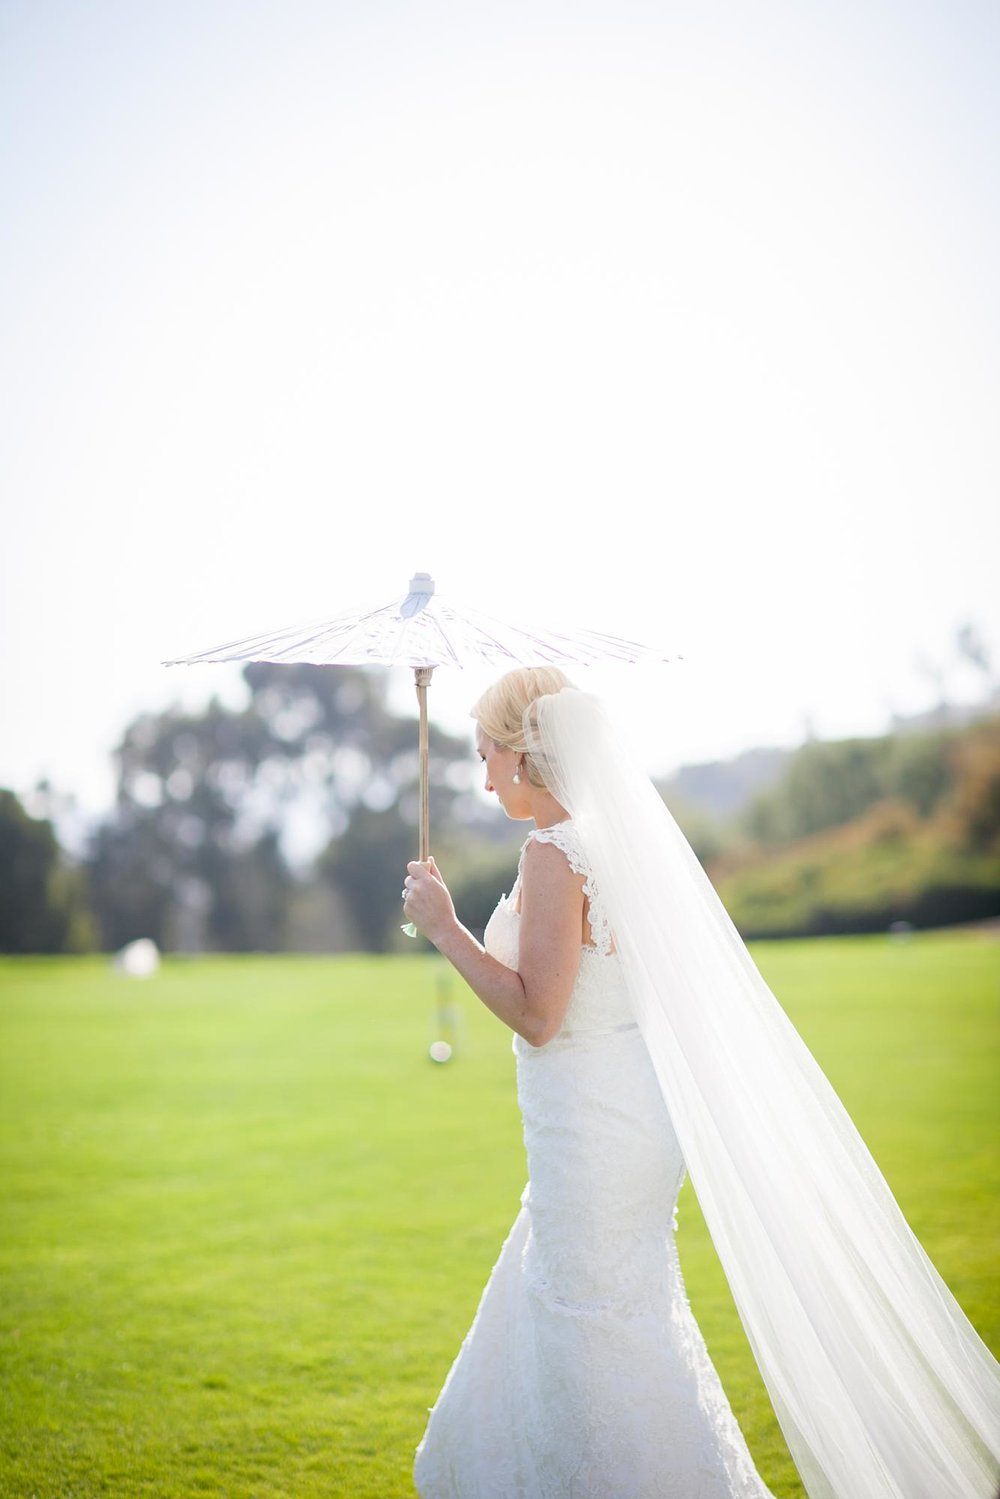 California Club Wedding | Miki & Sonja Photography | mikiandsonja.com